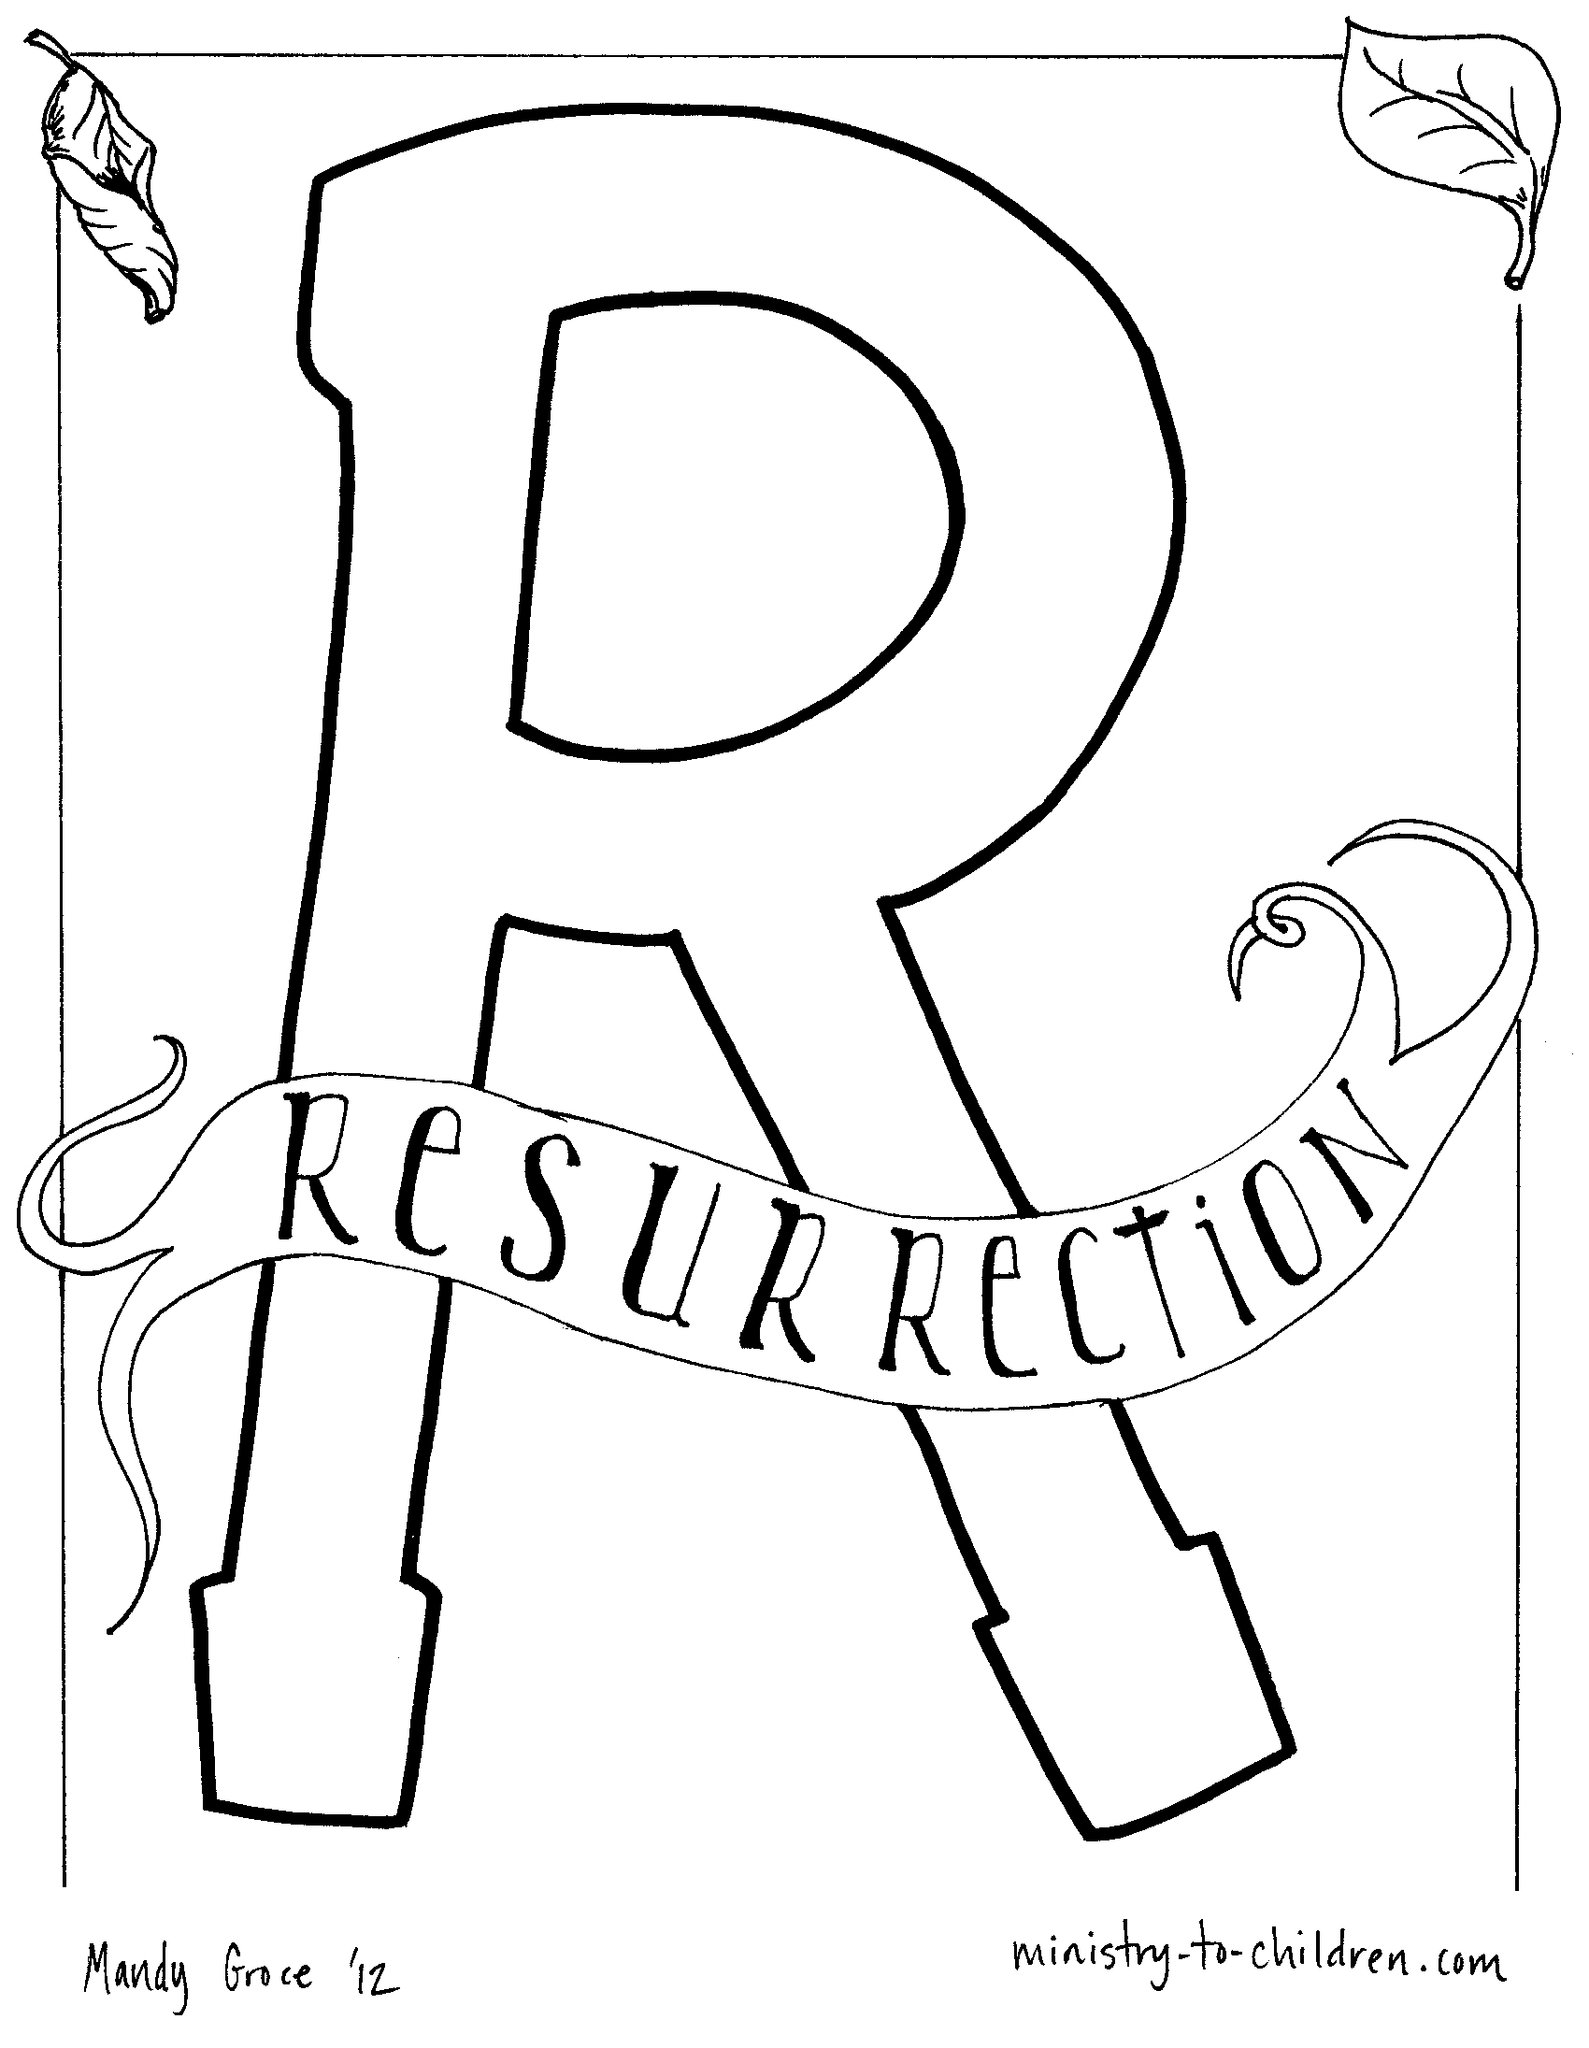 coloring bible esv psalm one coloring pages free to print coloring bible esv